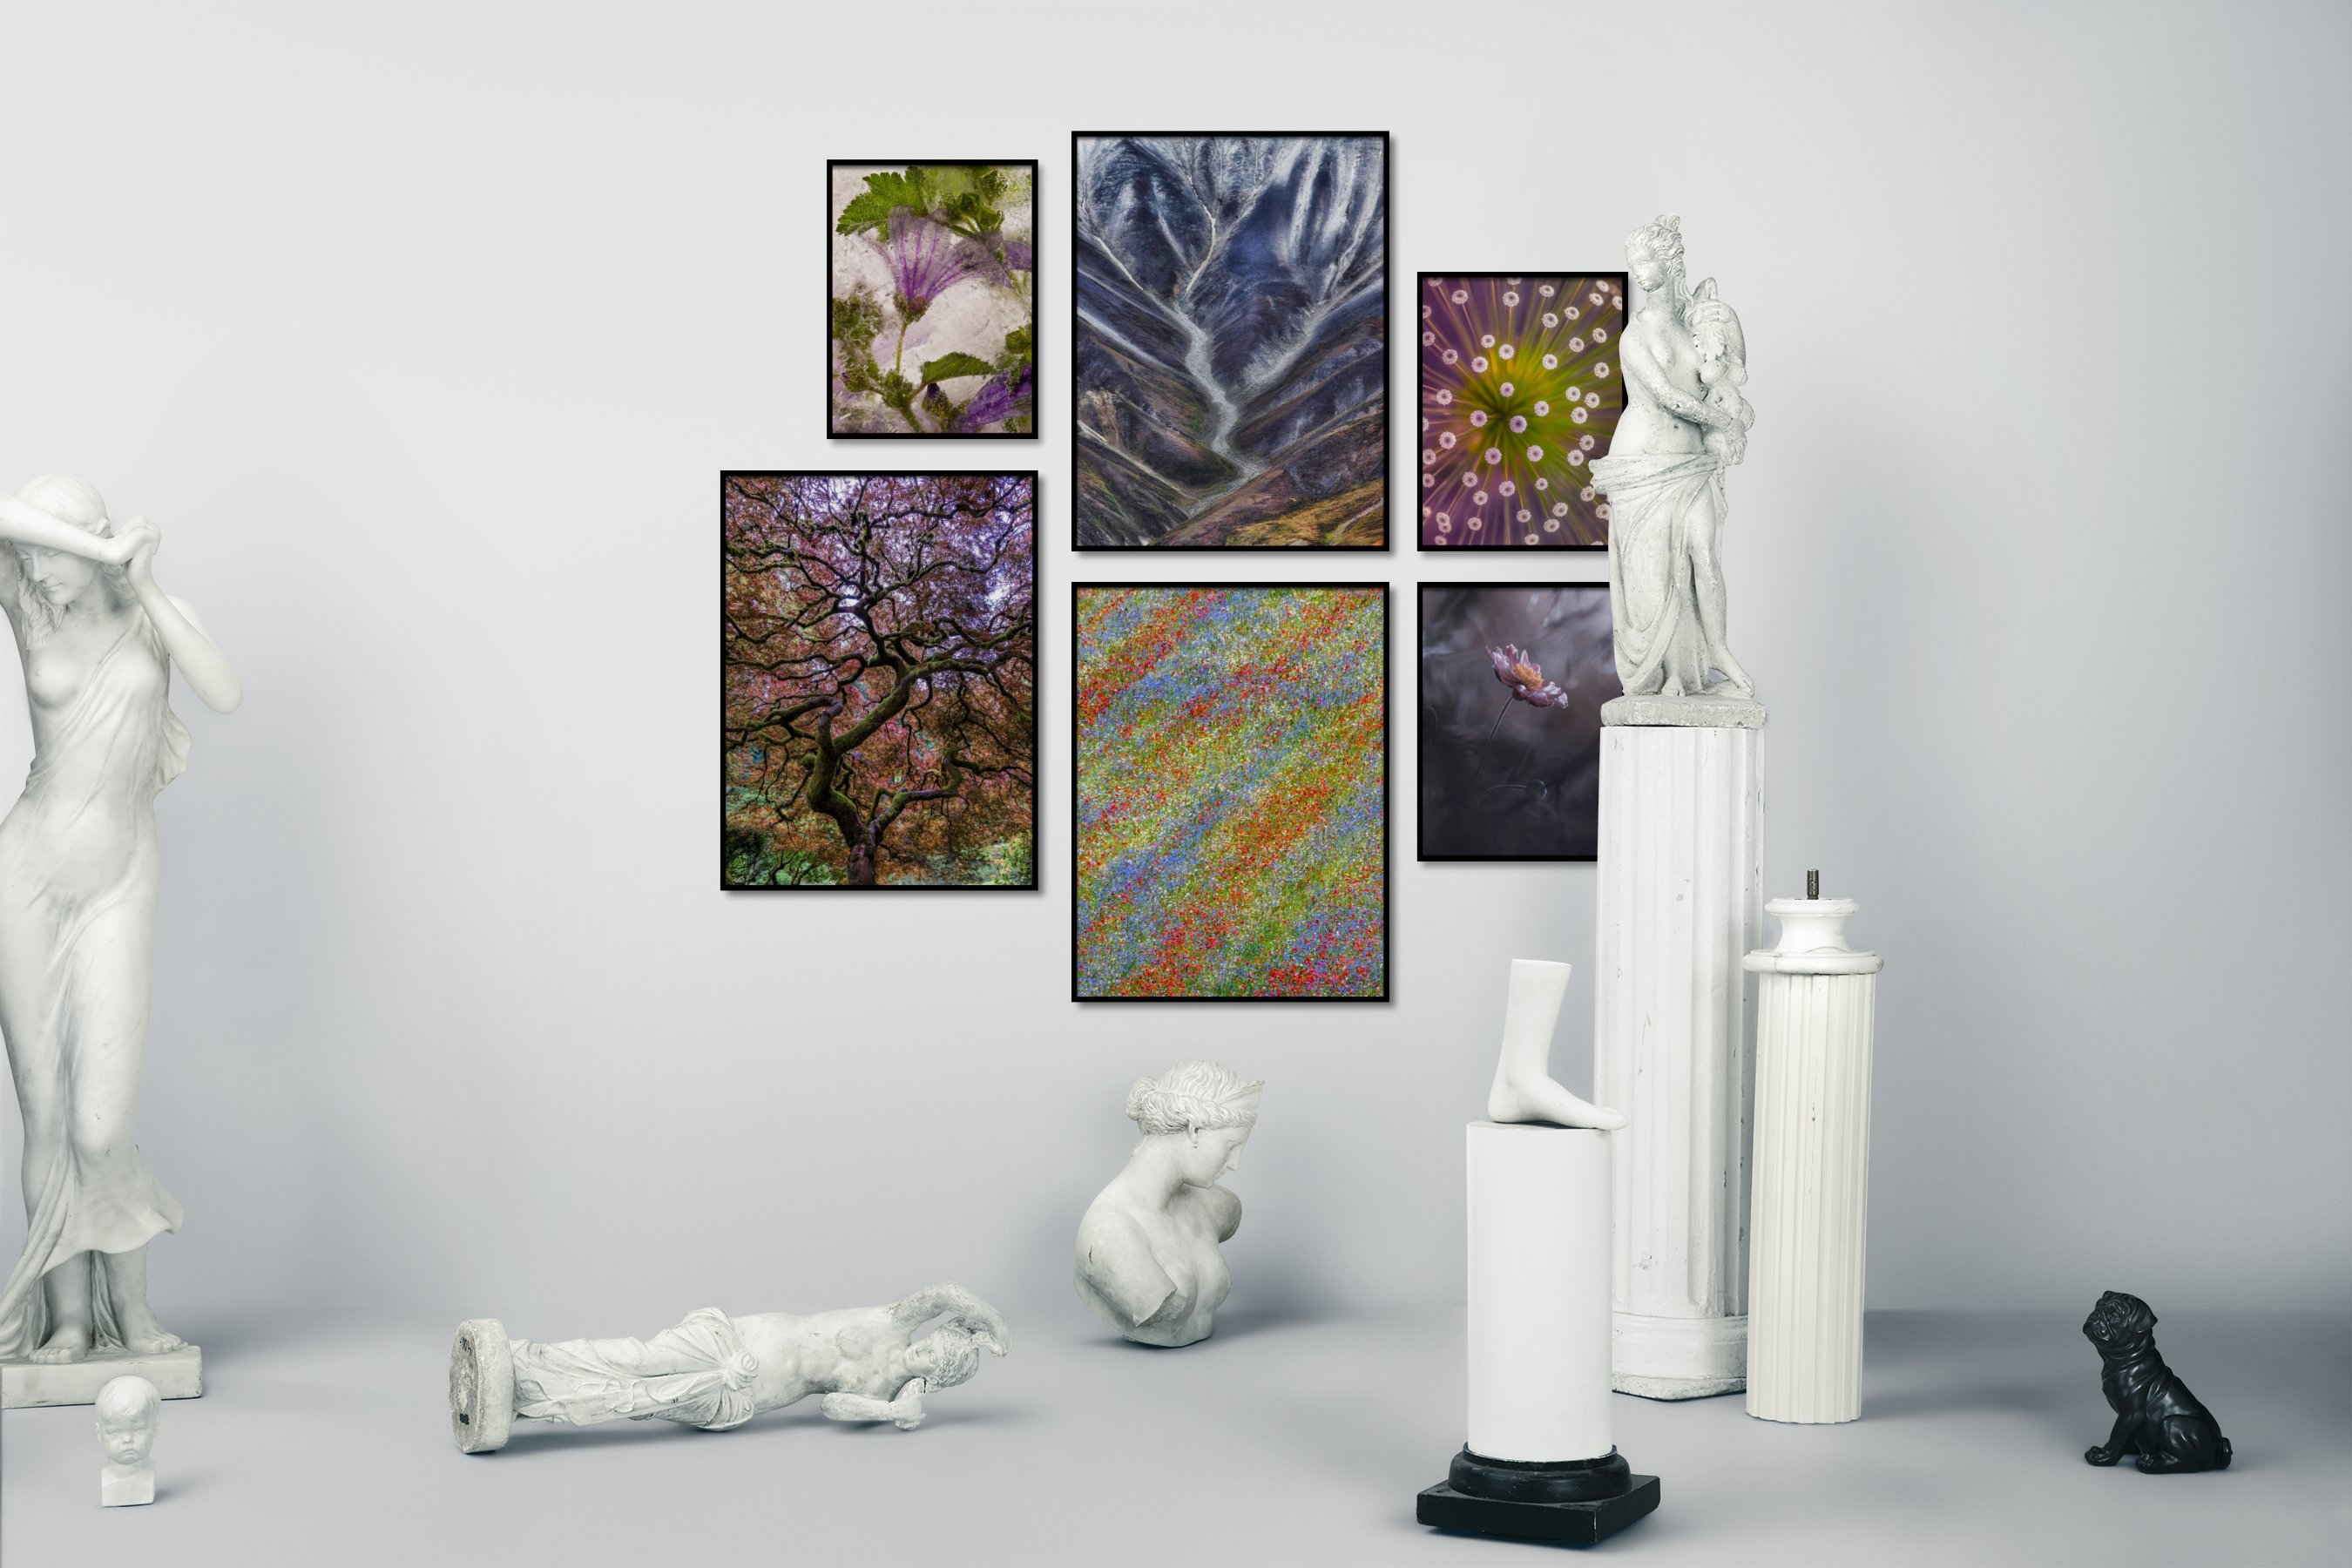 Gallery wall idea with six framed pictures arranged on a wall depicting For the Moderate, Flowers & Plants, Nature, Colorful, and For the Maximalist